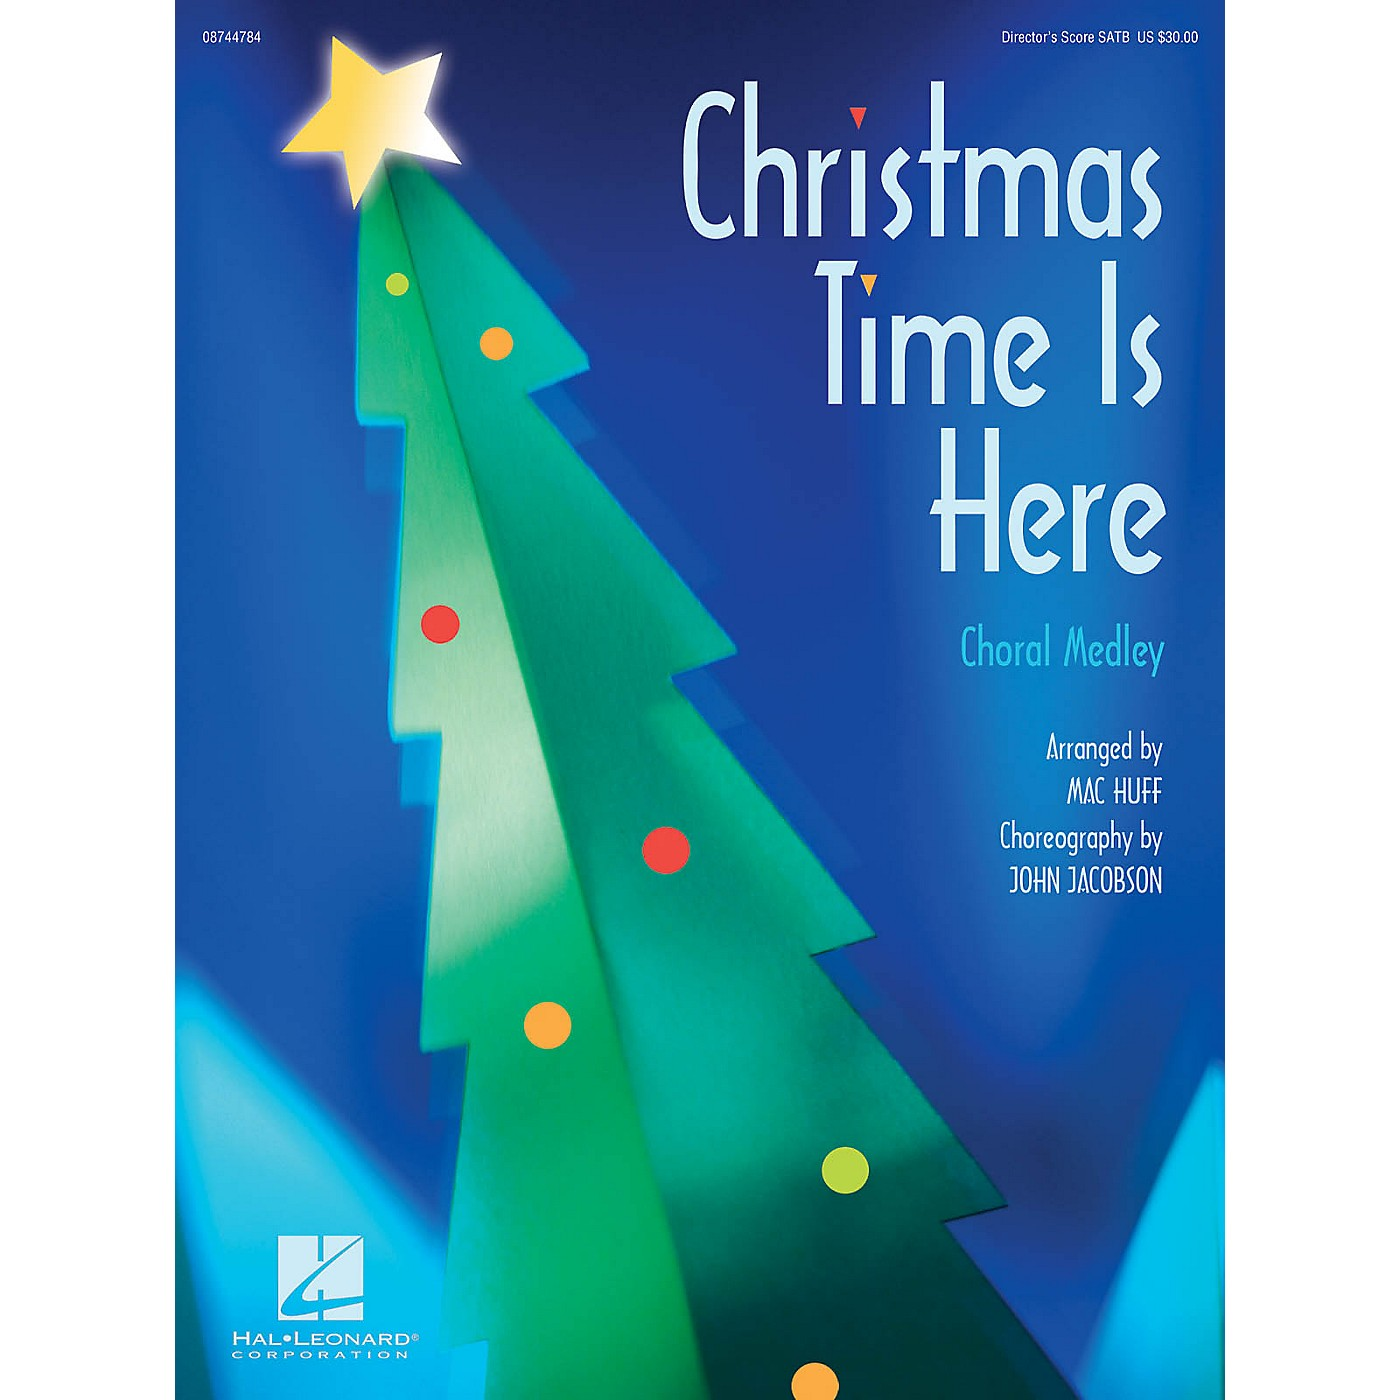 Hal Leonard Christmas Time Is Here (Choral Medley) 2 Part Singer Arranged by Mac Huff thumbnail